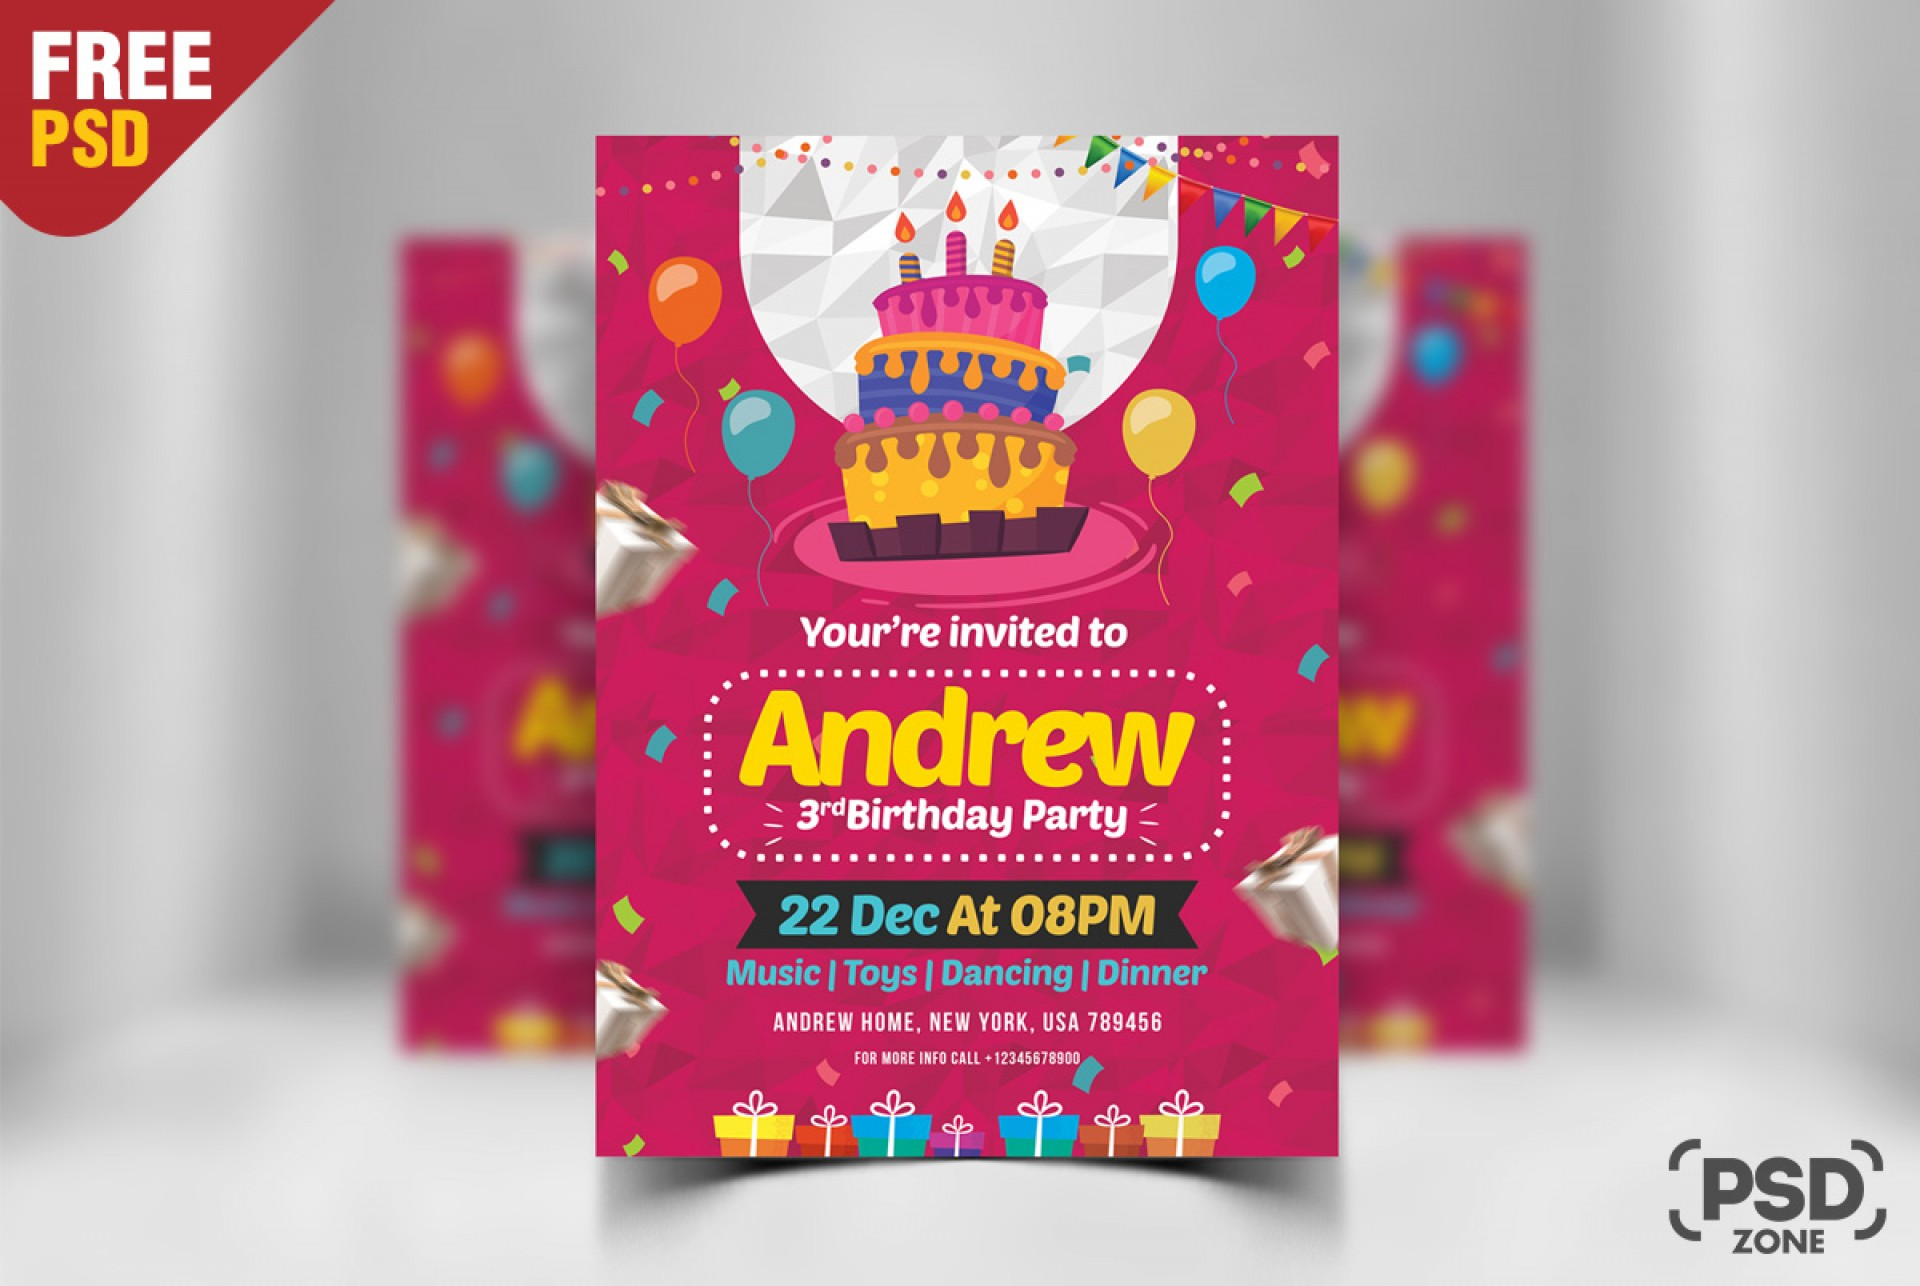 008 Archaicawful Birthday Card Template Photoshop Photo  Greeting Format 4x6 Free1920